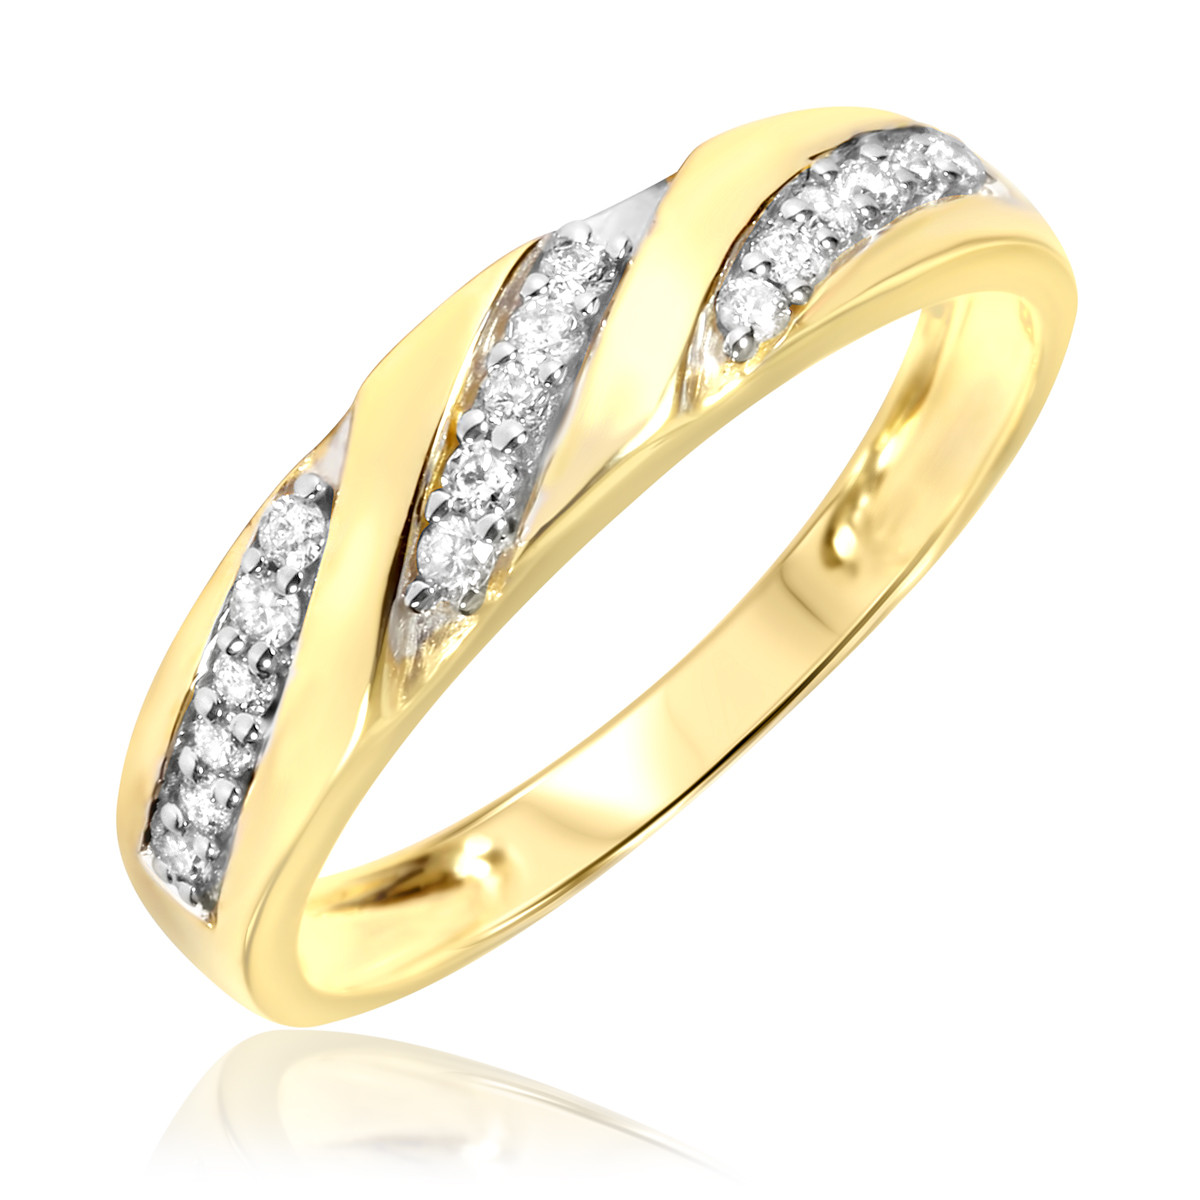 1 4 carat tw diamond men39s wedding ring 14k yellow gold With mens yellow gold wedding rings